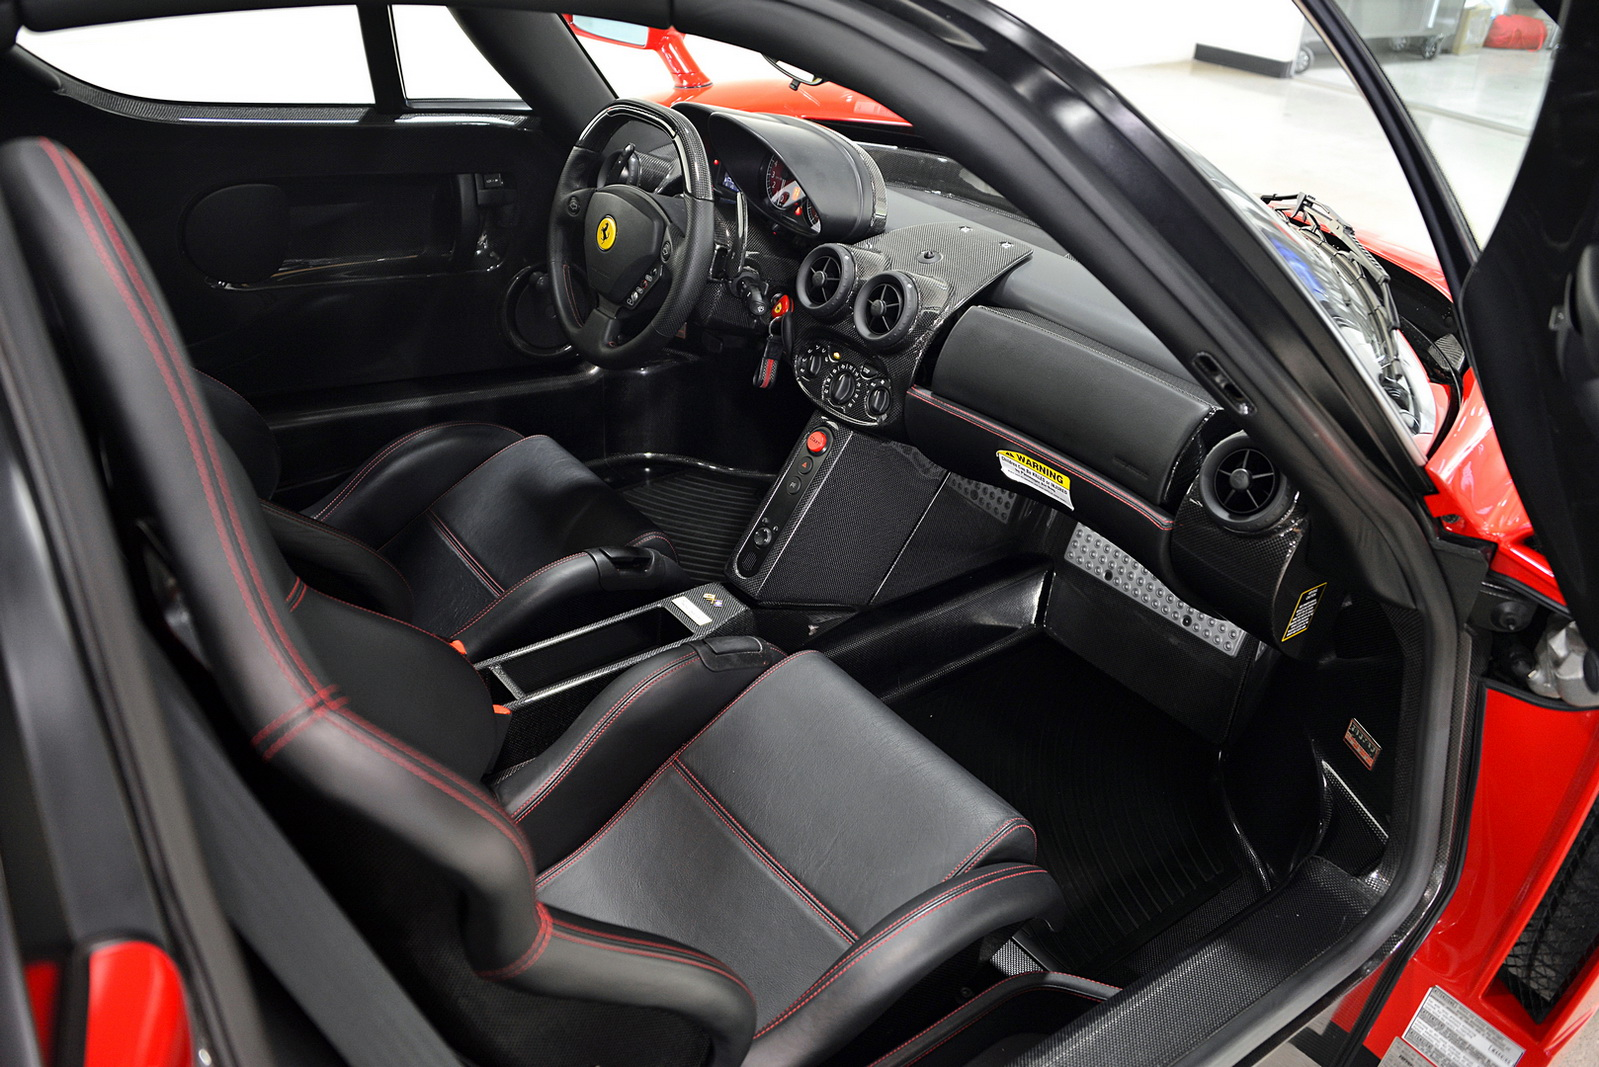 Enzo Interieur My Precious Ferrari Enzo With Just 354 Miles For Sale Carscoops